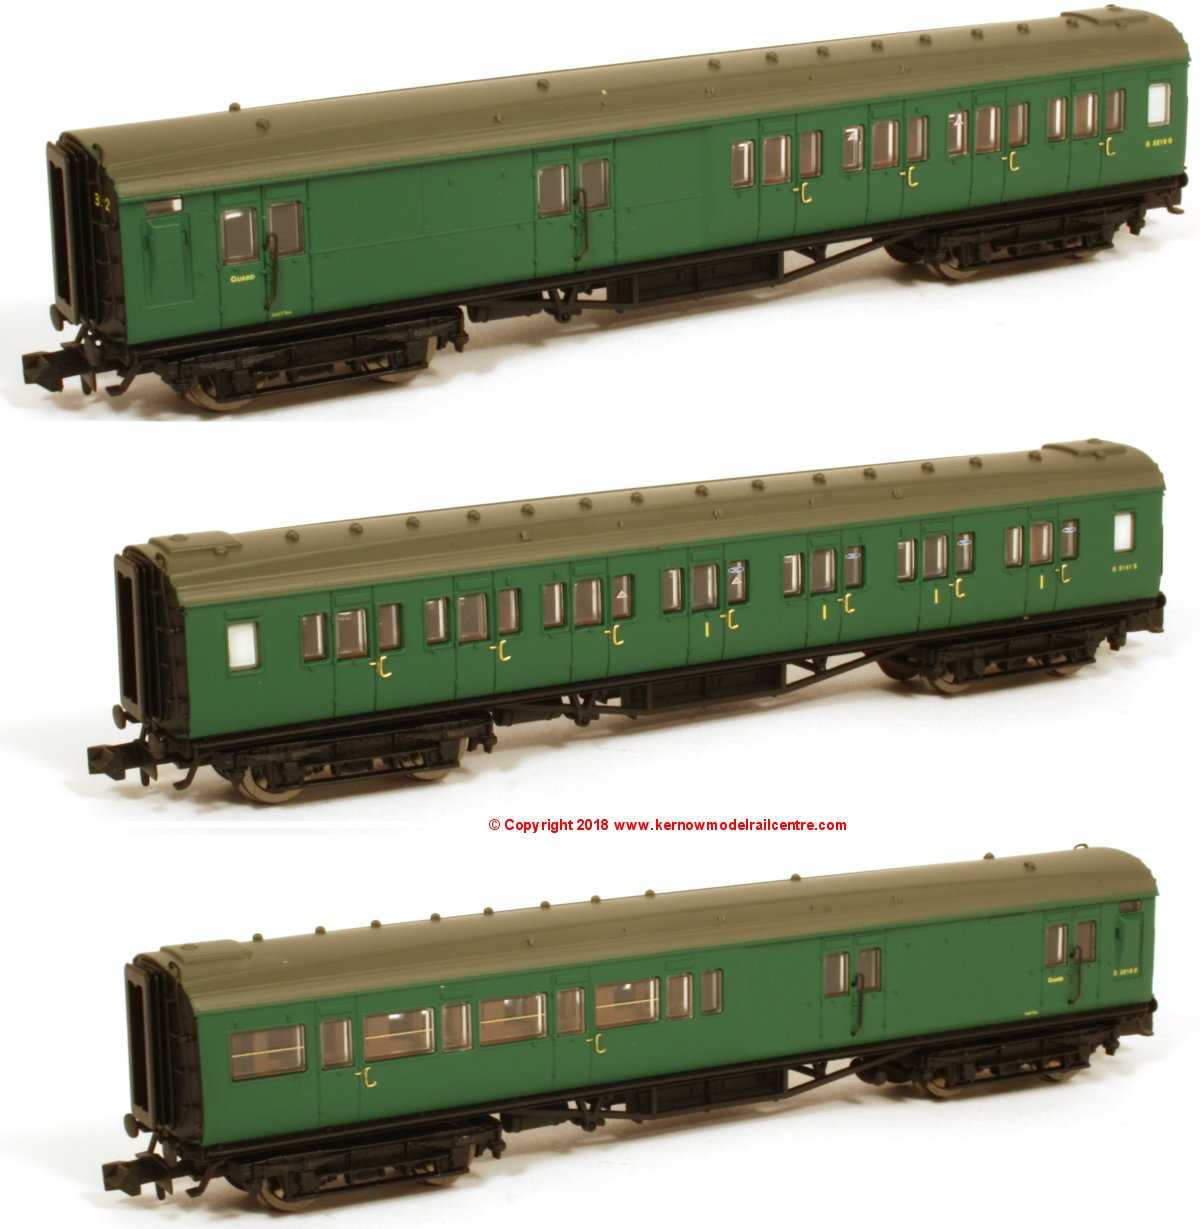 2P-012-551 Dapol Maunsell Coach Set number 392 in BR SR Green livery